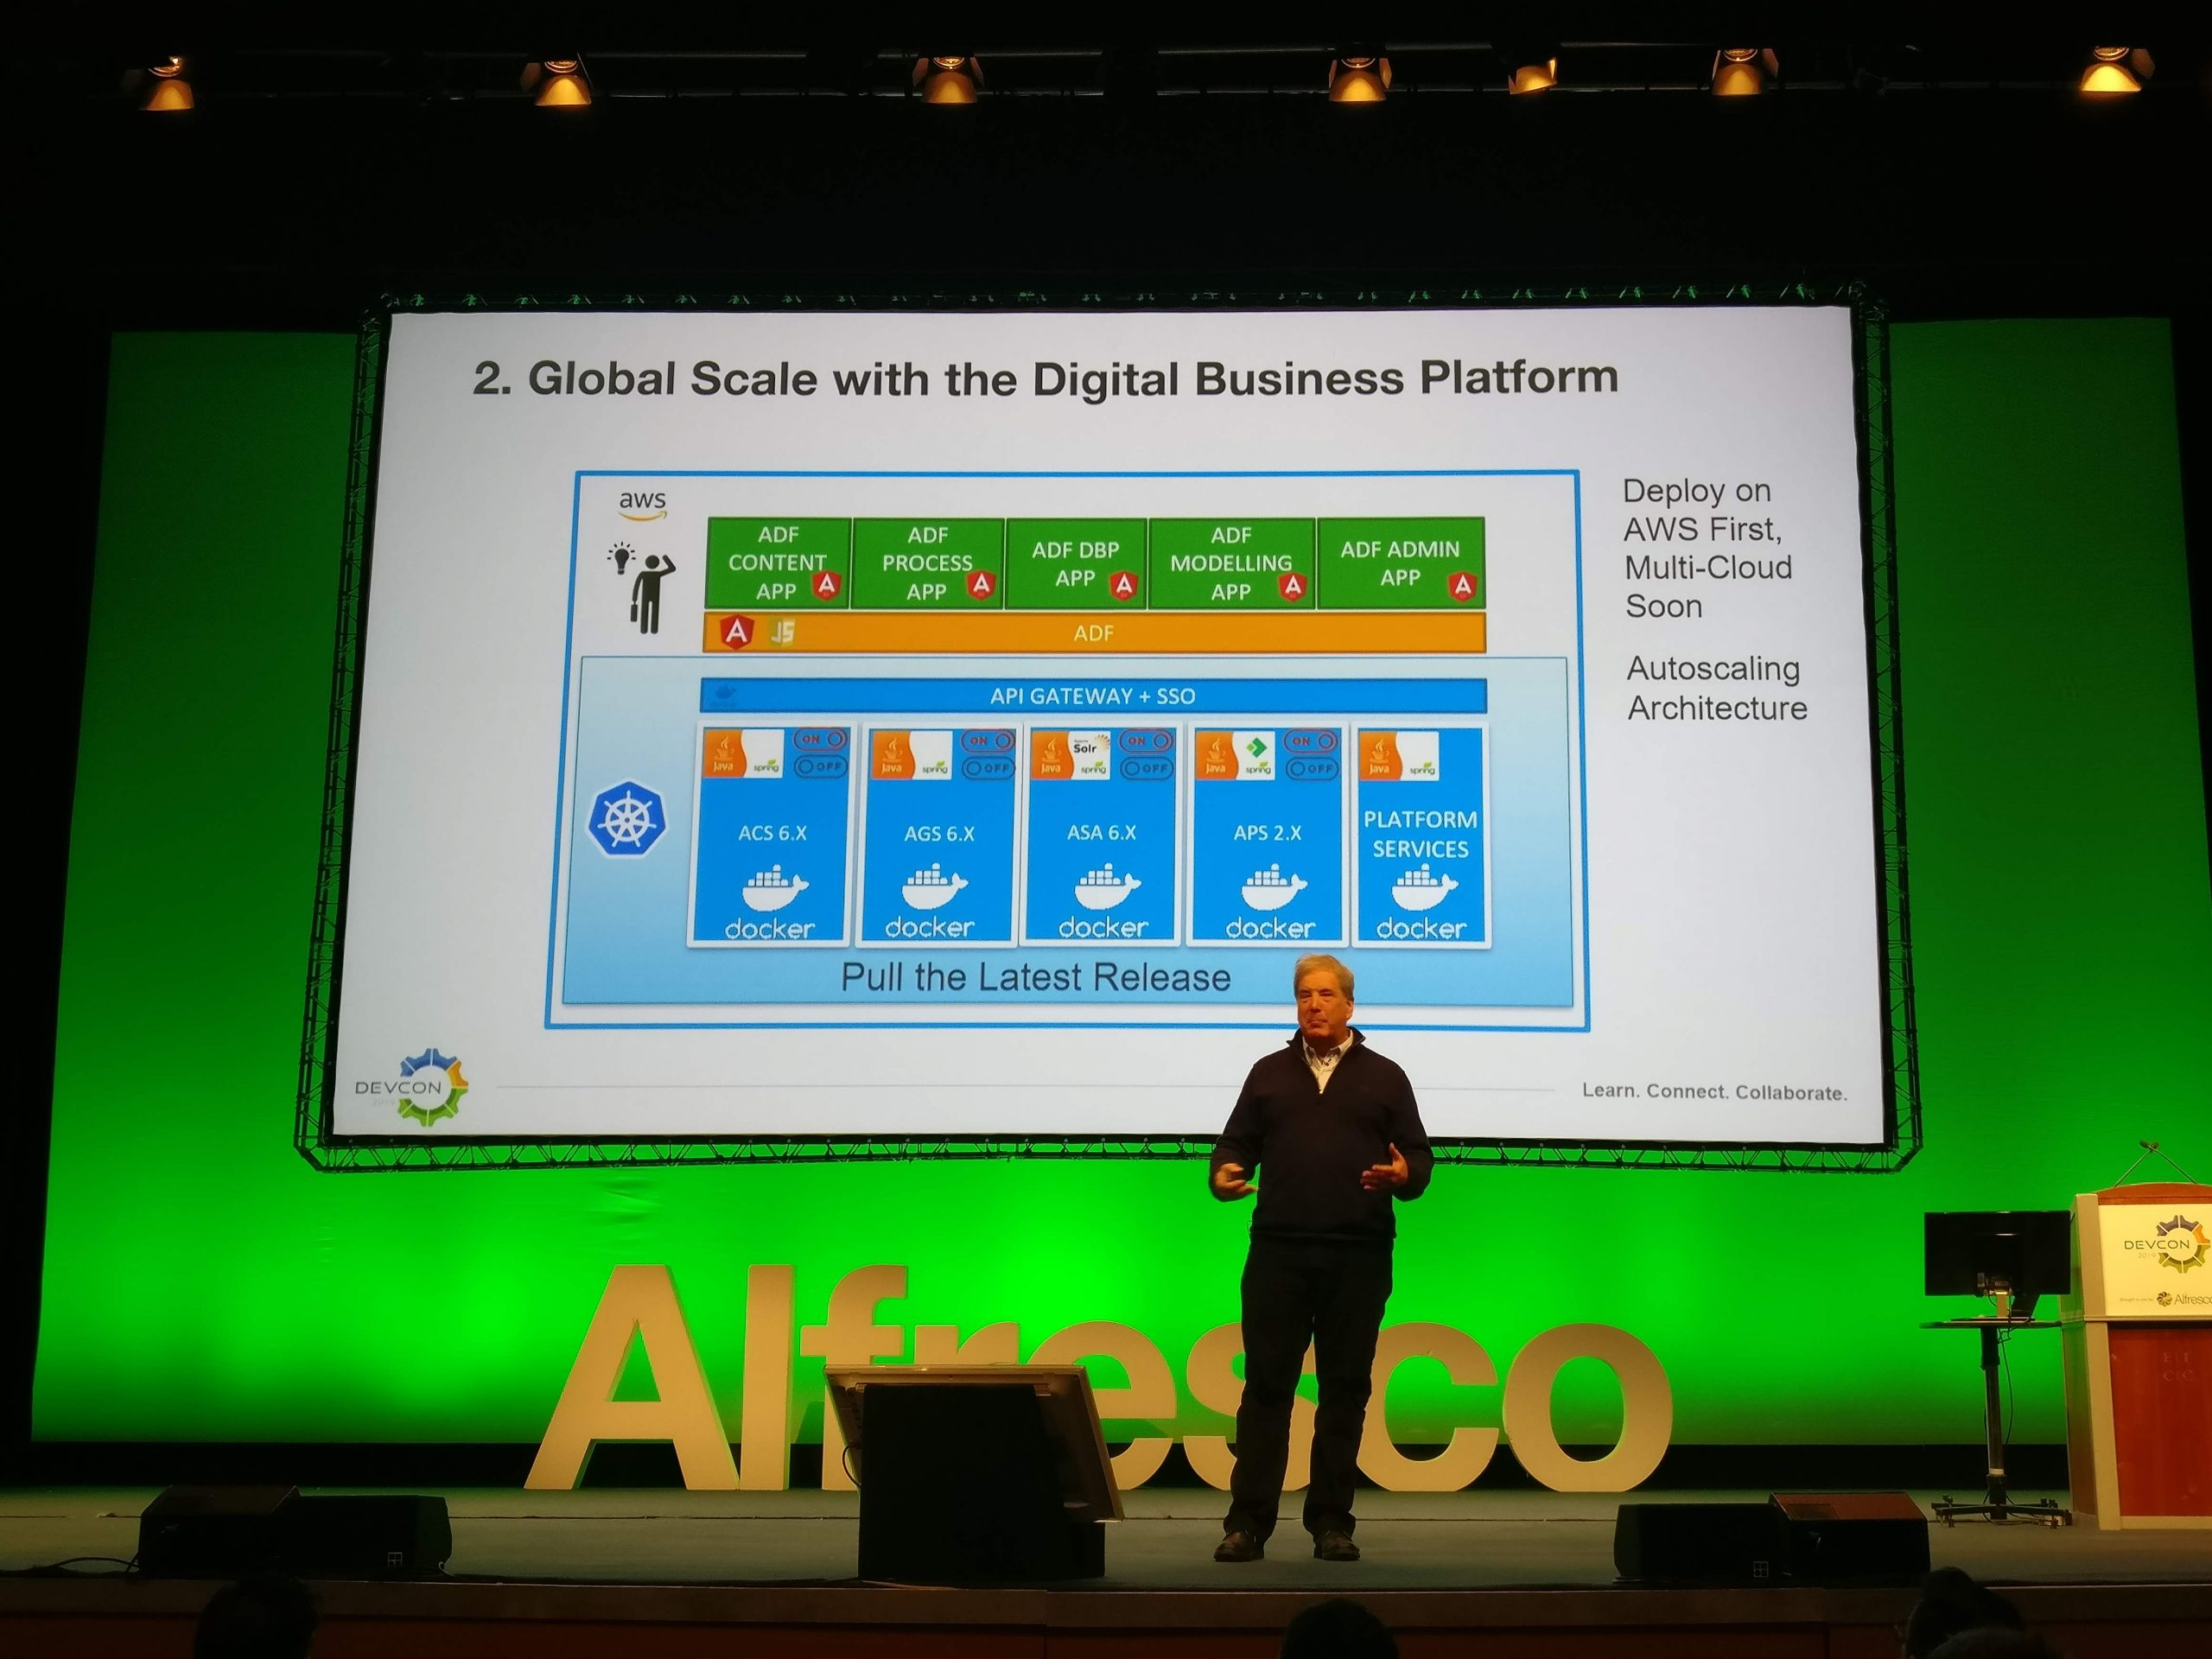 Global Scale with the Digital Business Platform